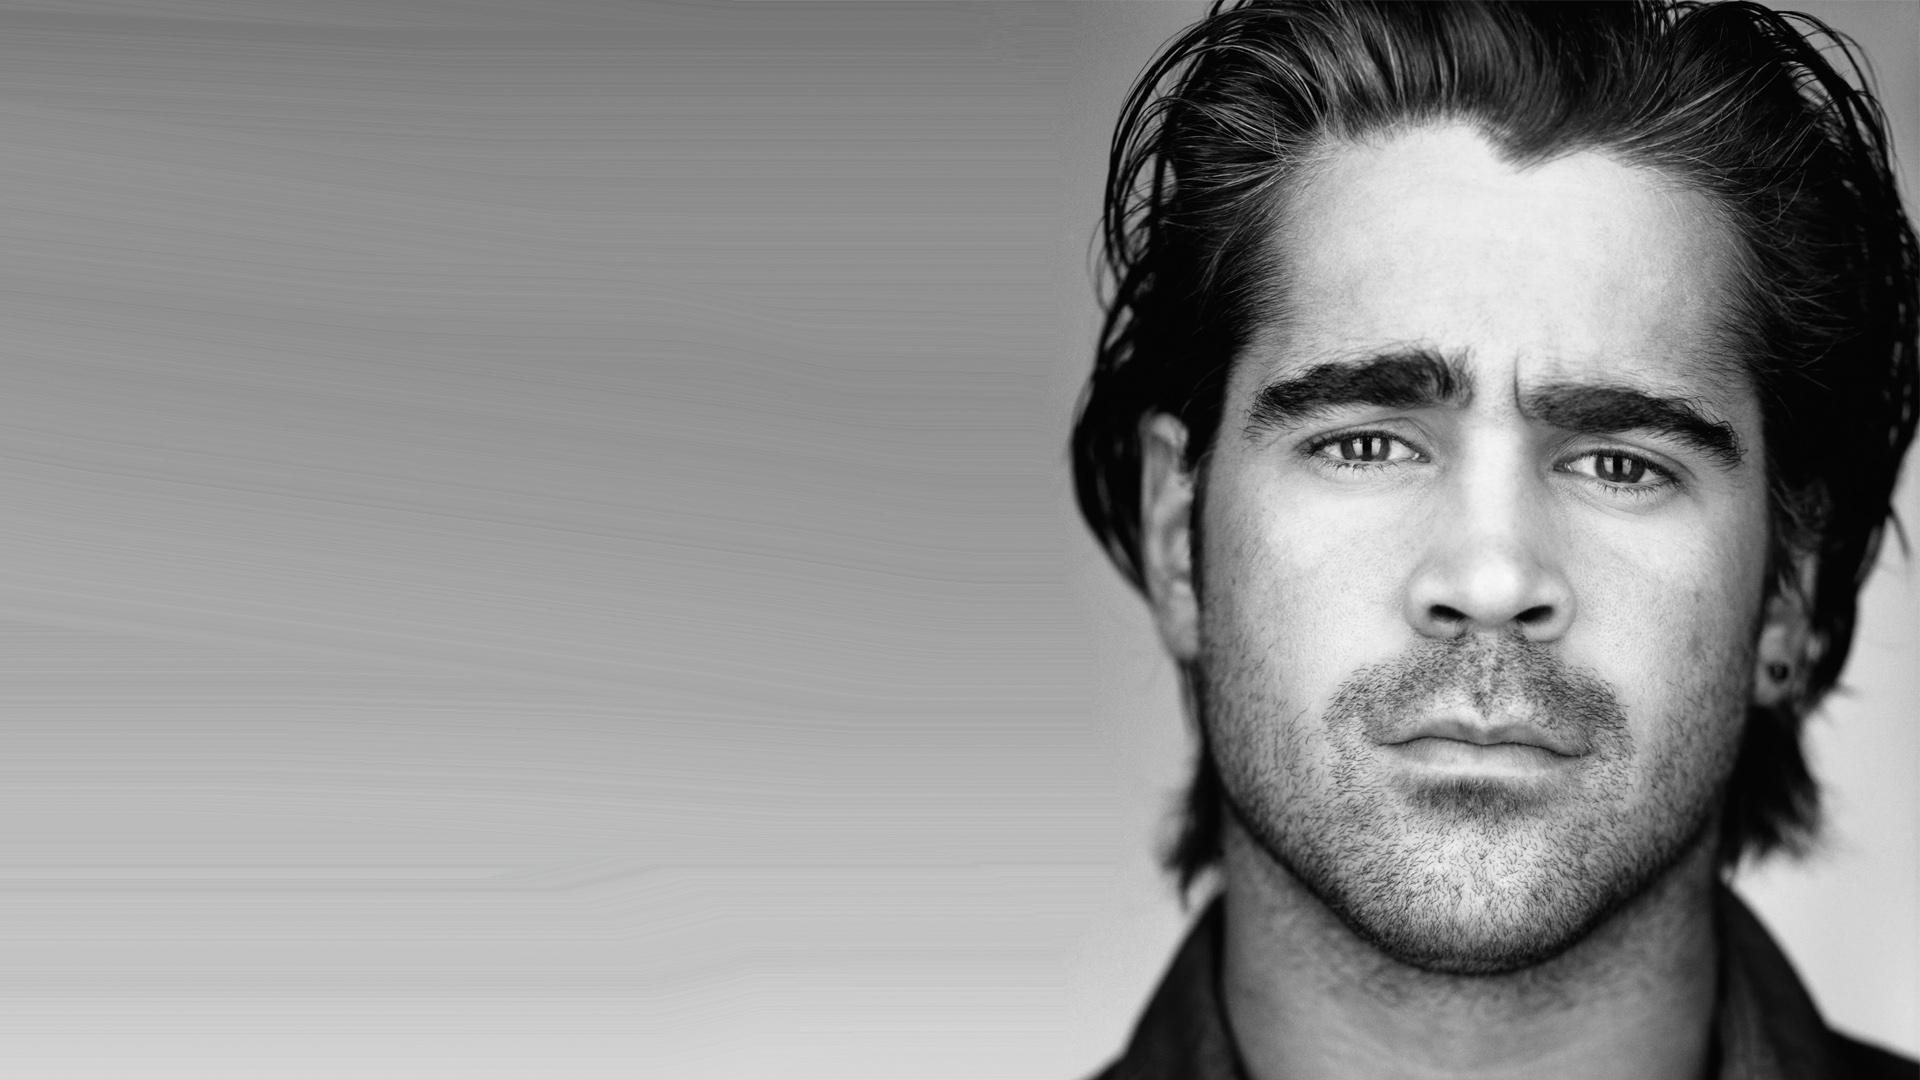 HD Colin Farrell Wallpapers HdCoolWallpapersCom 1920x1080